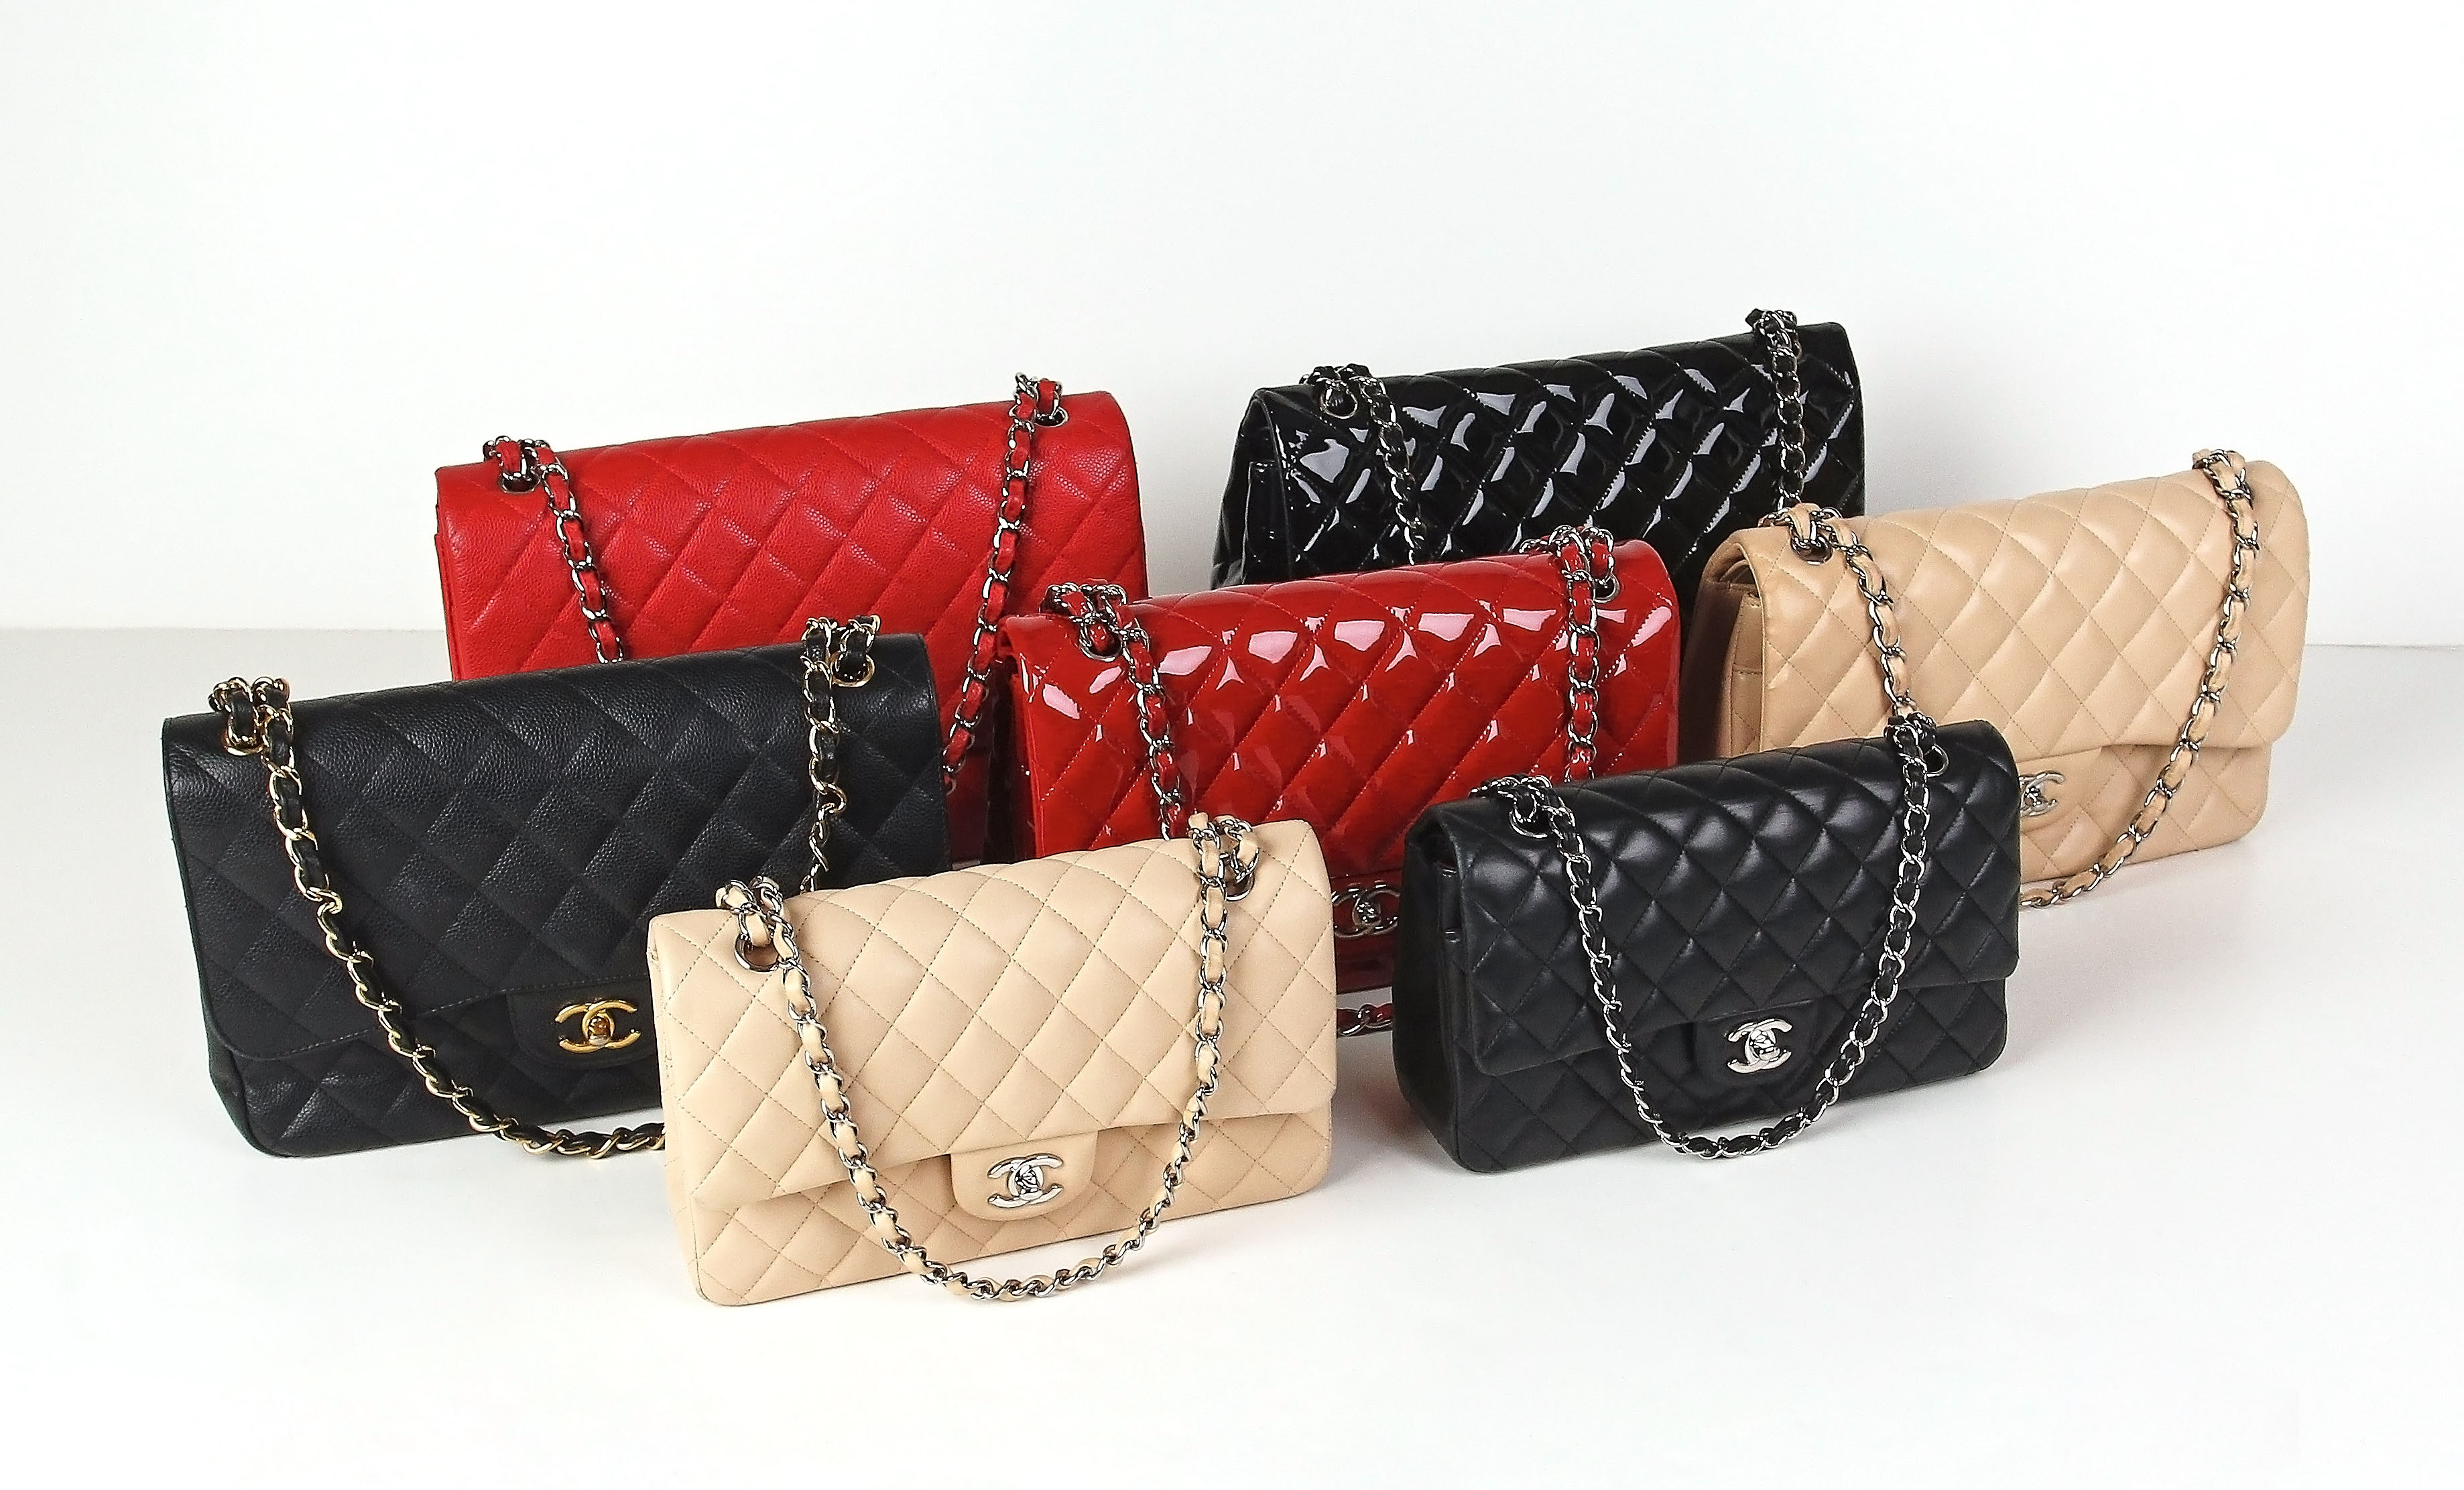 5a15baf06524 Chanel Classic Flap Bag Collection | YoogisCloset.com